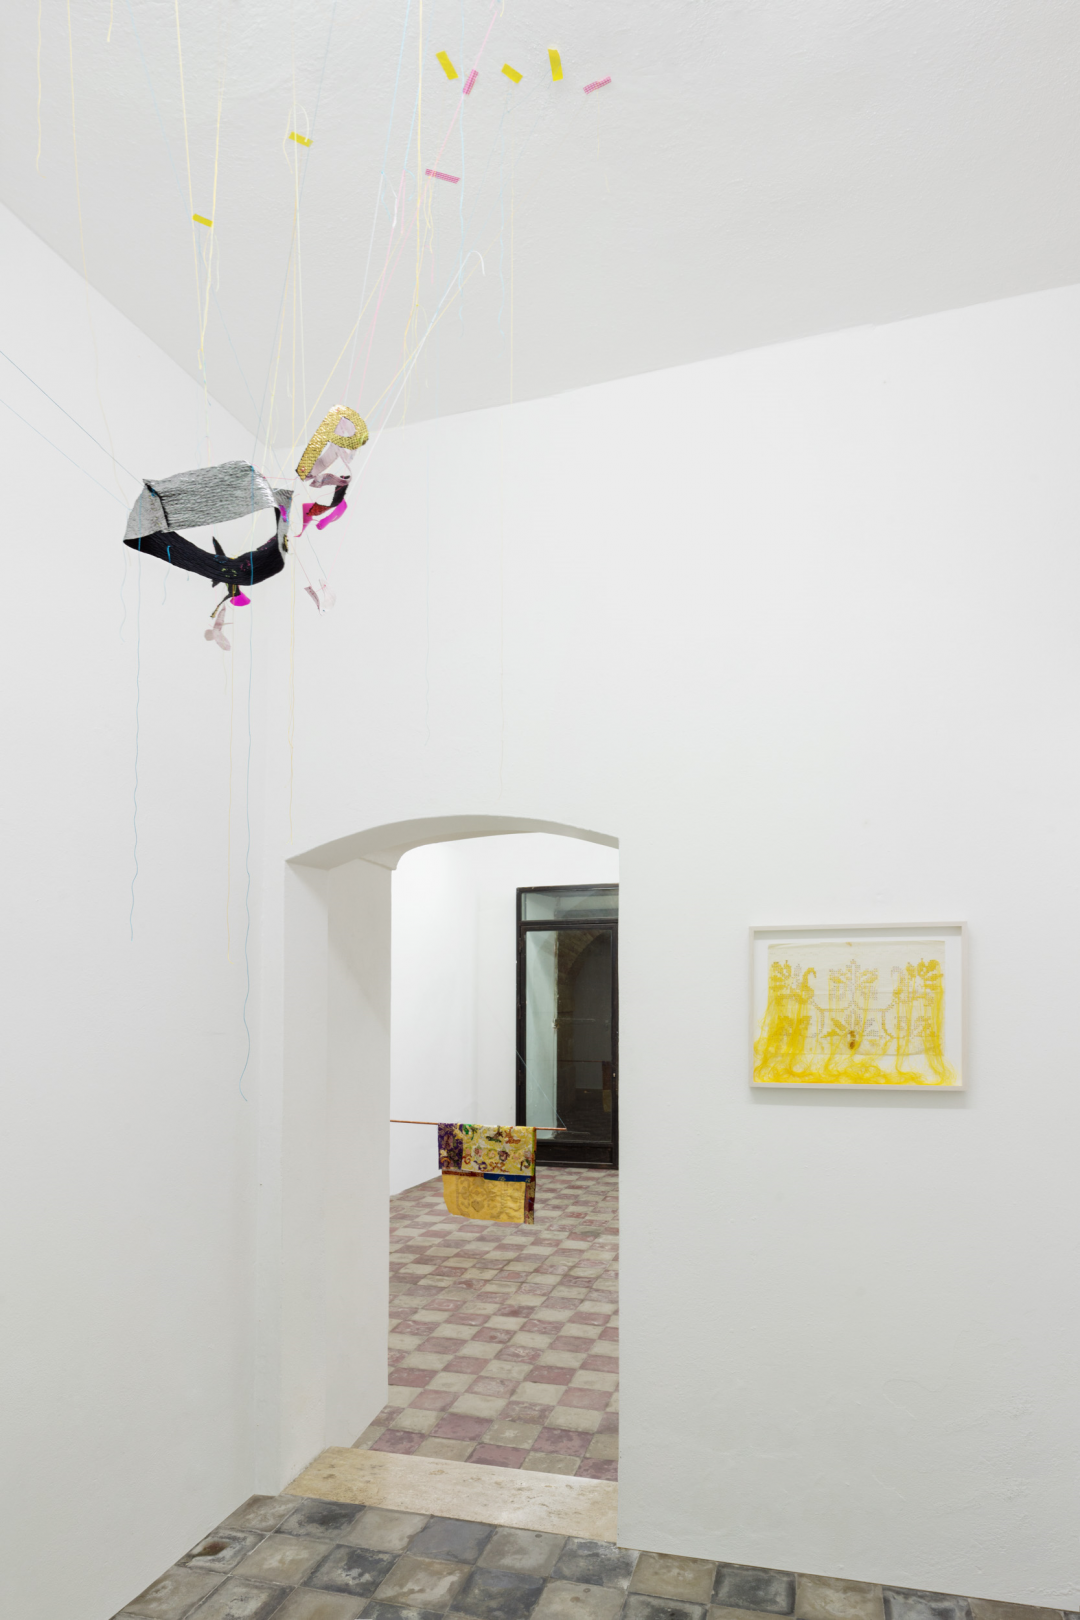 Ruben Montini, This is all I have to offer (exhibition view). Ph. Ela Bialkowska - OKNOstudio. Courtesy of the artist